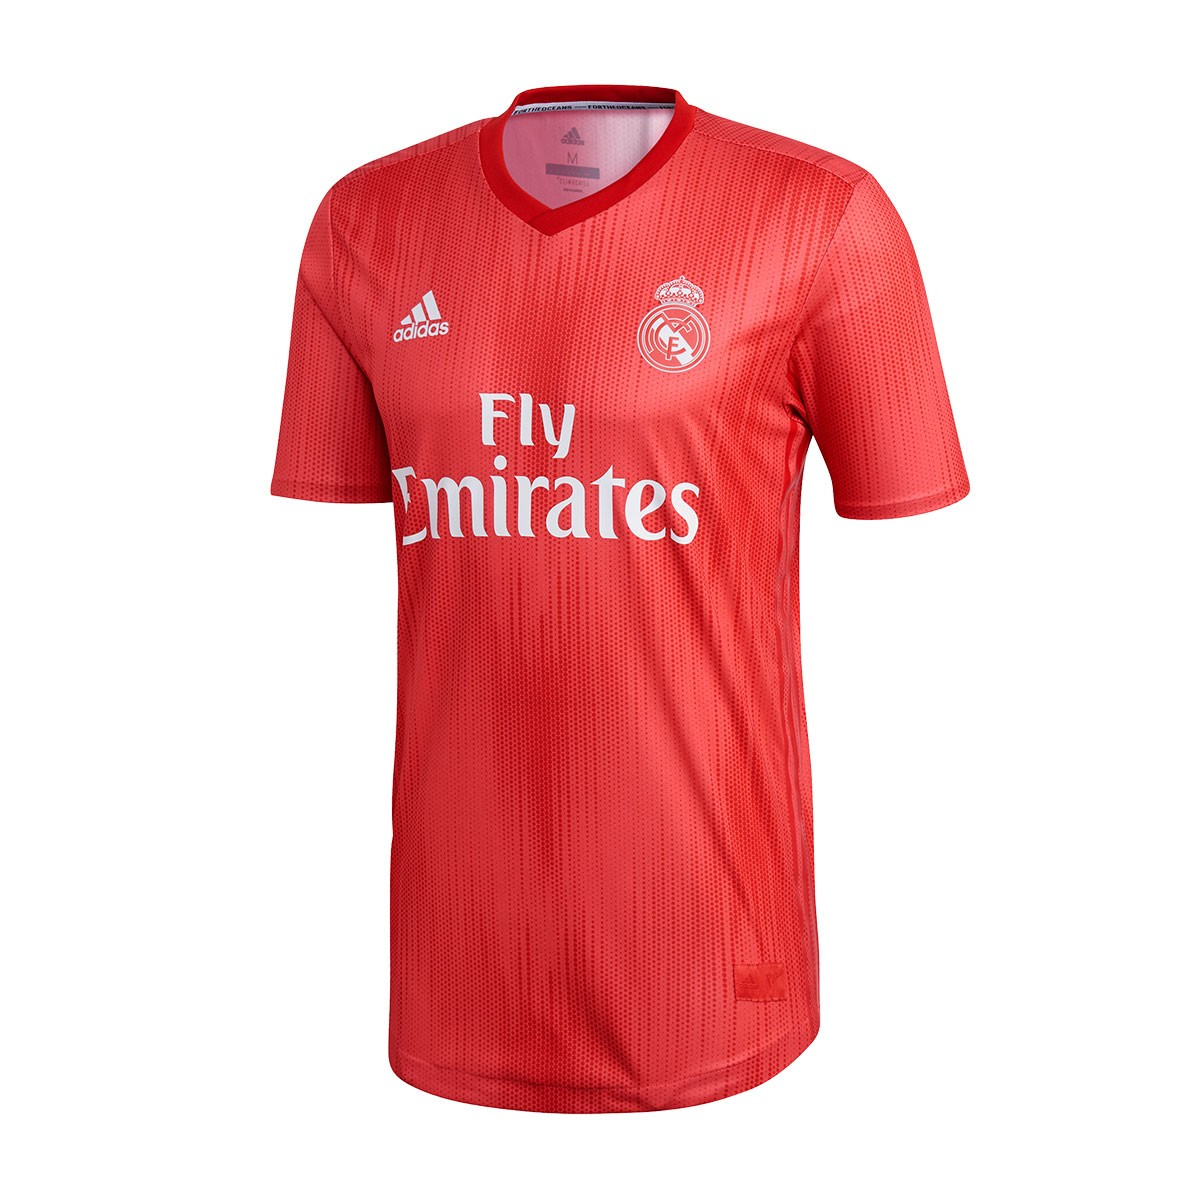 885b37549108f Camiseta adidas Real Madrid Tercera Equipación Authentic 2018-2019 Real  coral-Vivid red - Tienda de fútbol Fútbol Emotion